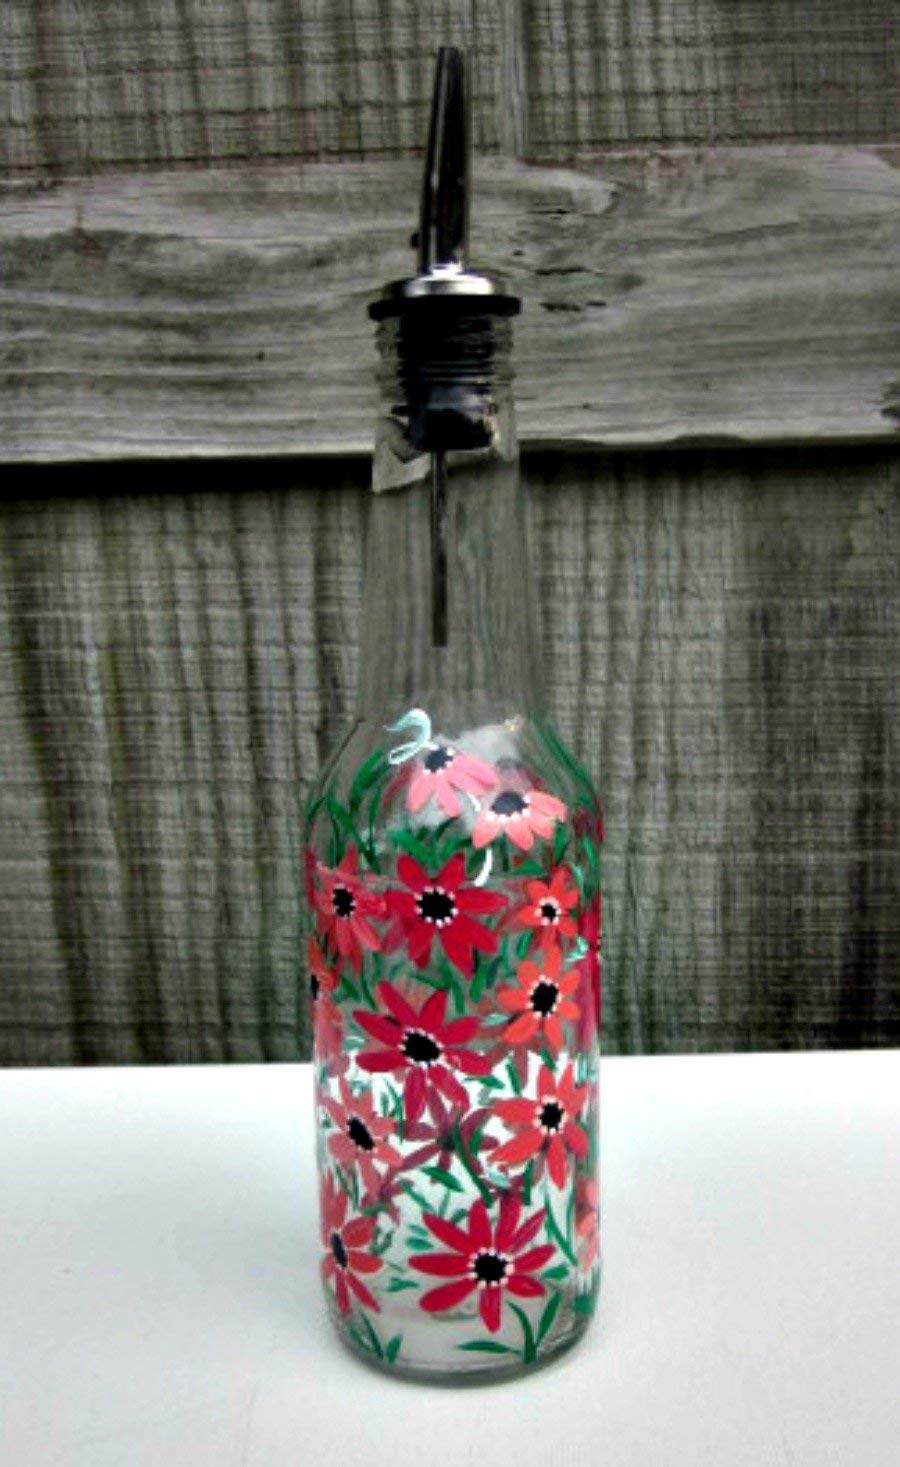 Dish Soap Dispenser, Oil and Vinegar Bottle, Hand Painted Glass Bottle, Kitchen Decoration, Shades of Coral Flowers